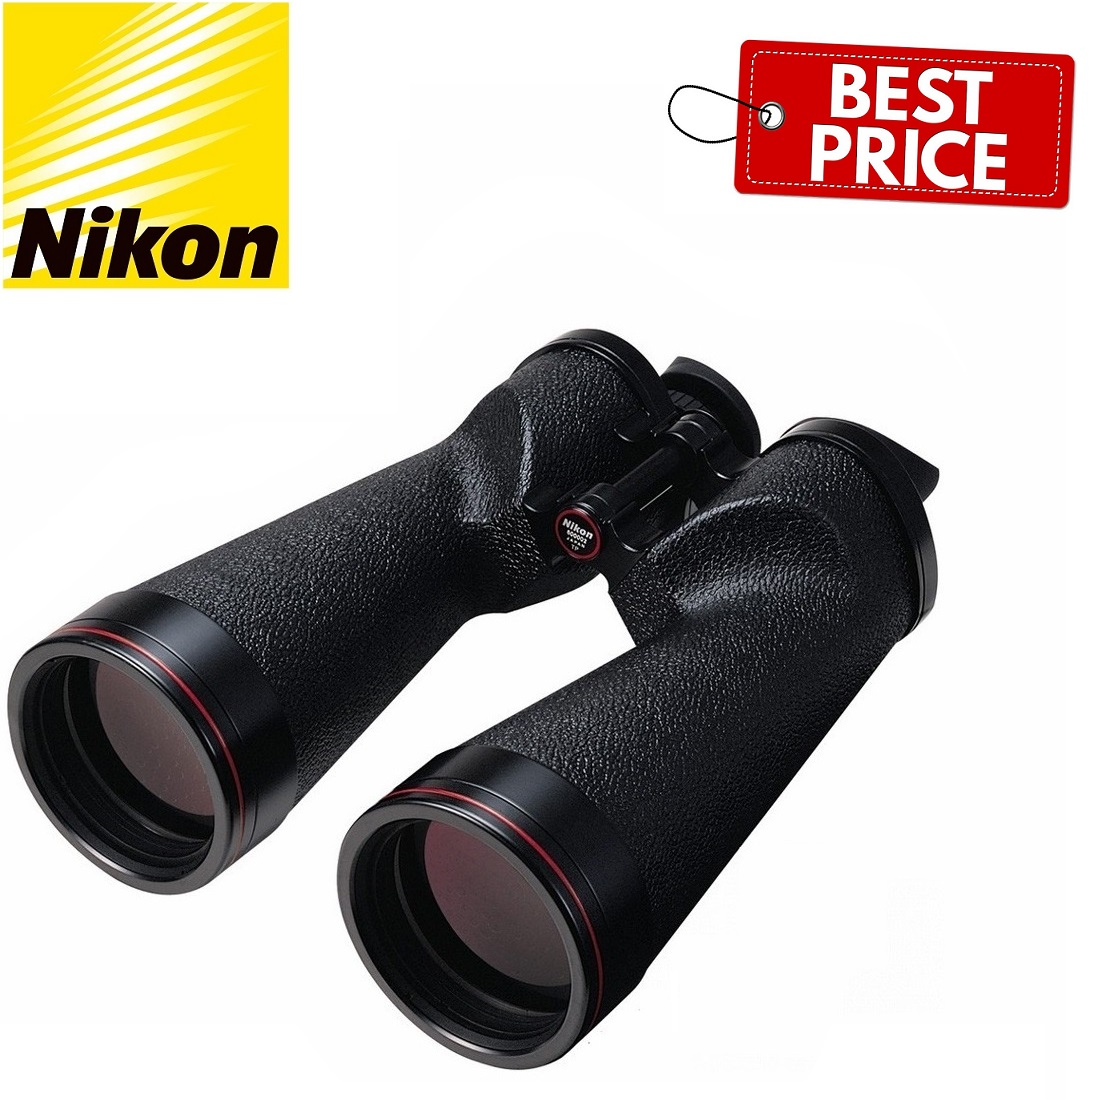 Nikon 10x70 IF SP WP Binoculars (Black)